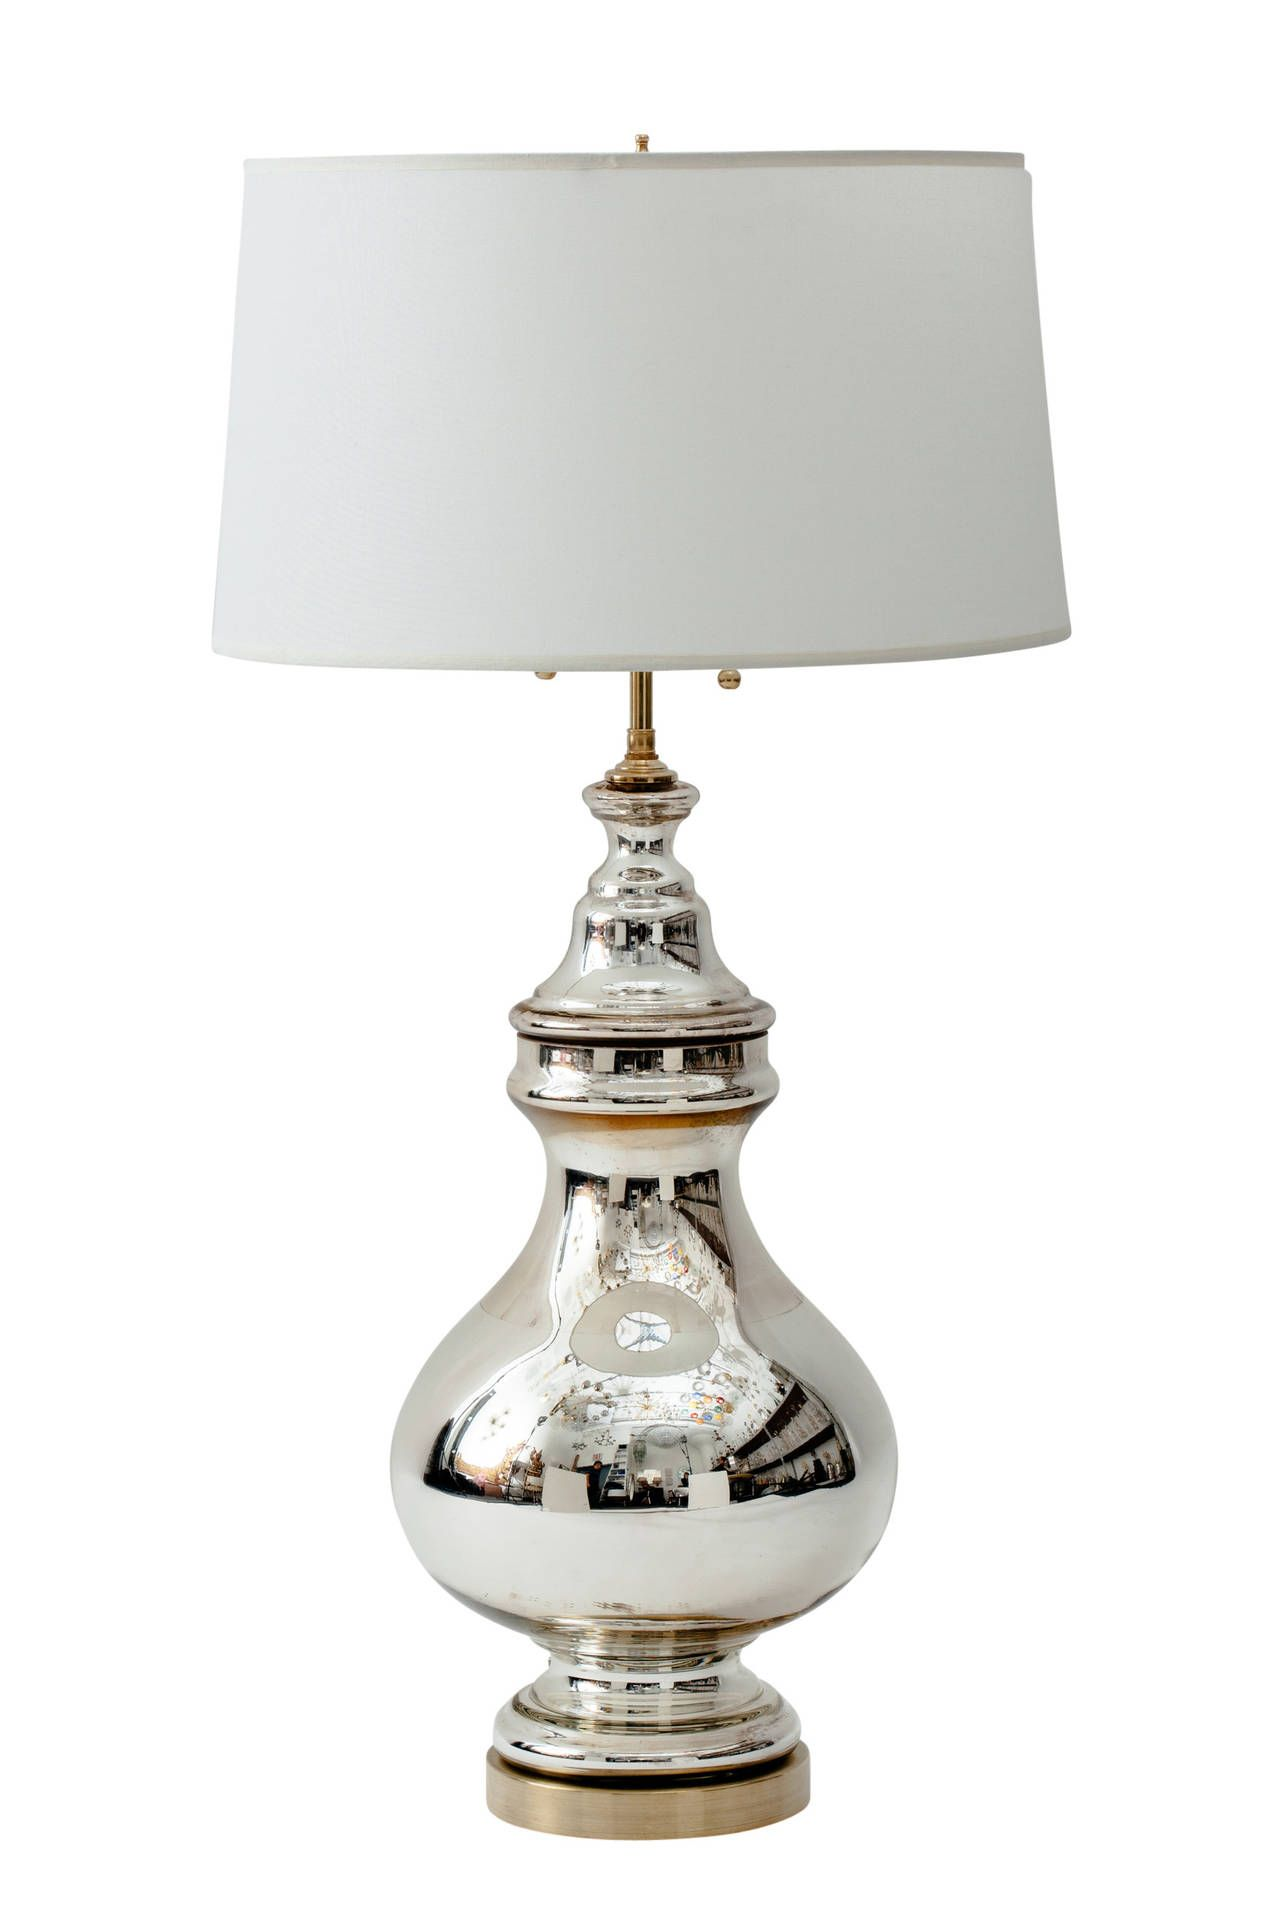 Mercury Glass Apothecary Jar Lamp | From a unique collection of antique and modern table lamps at https://www.1stdibs.com/furniture/lighting/table-lamps/